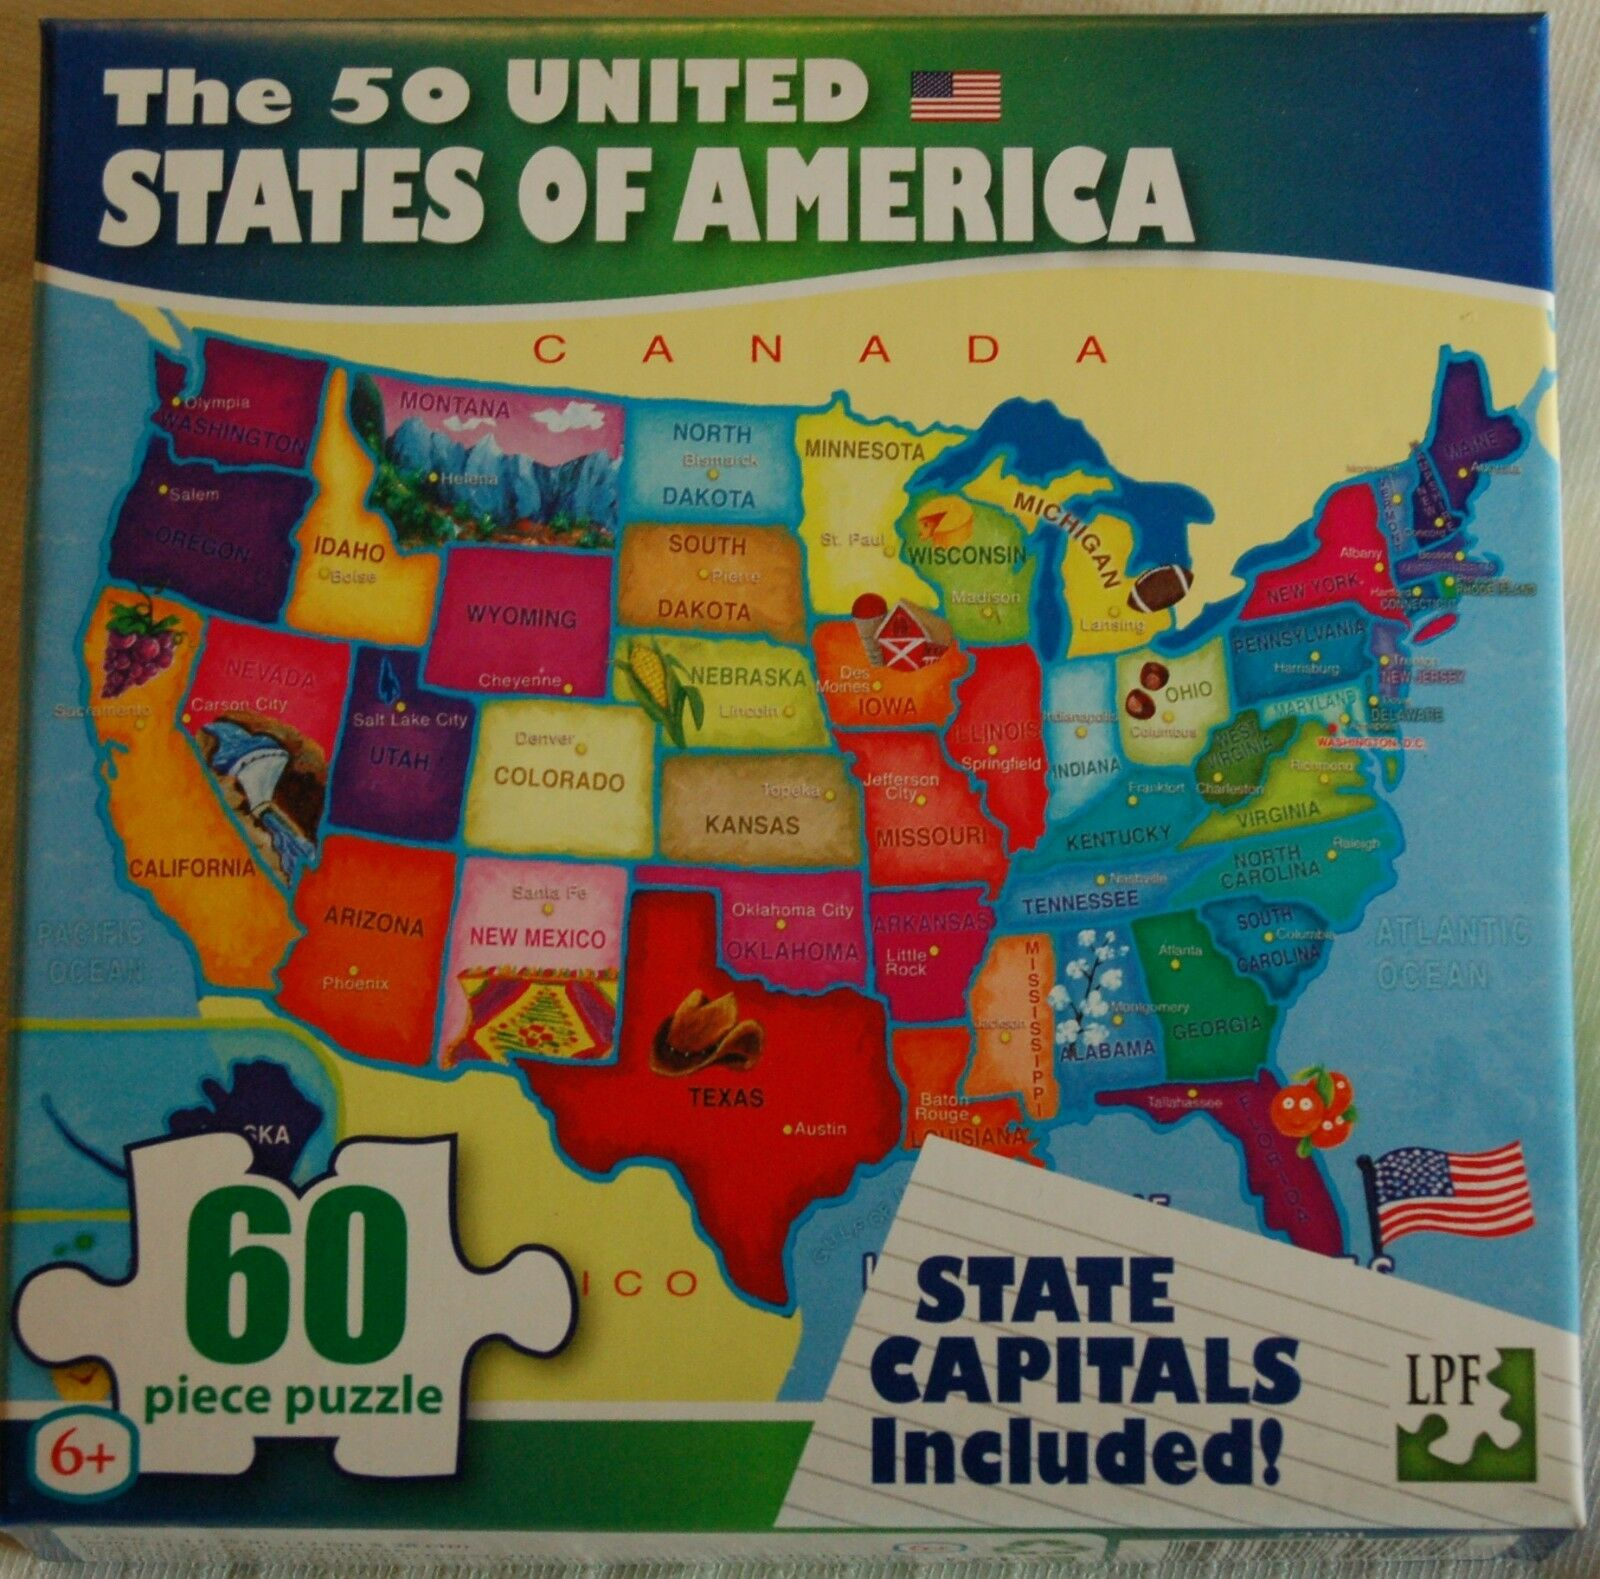 HttpsssliebayimgcomimagesgumsAAOxyRhBSuB - Map of the 50 united states